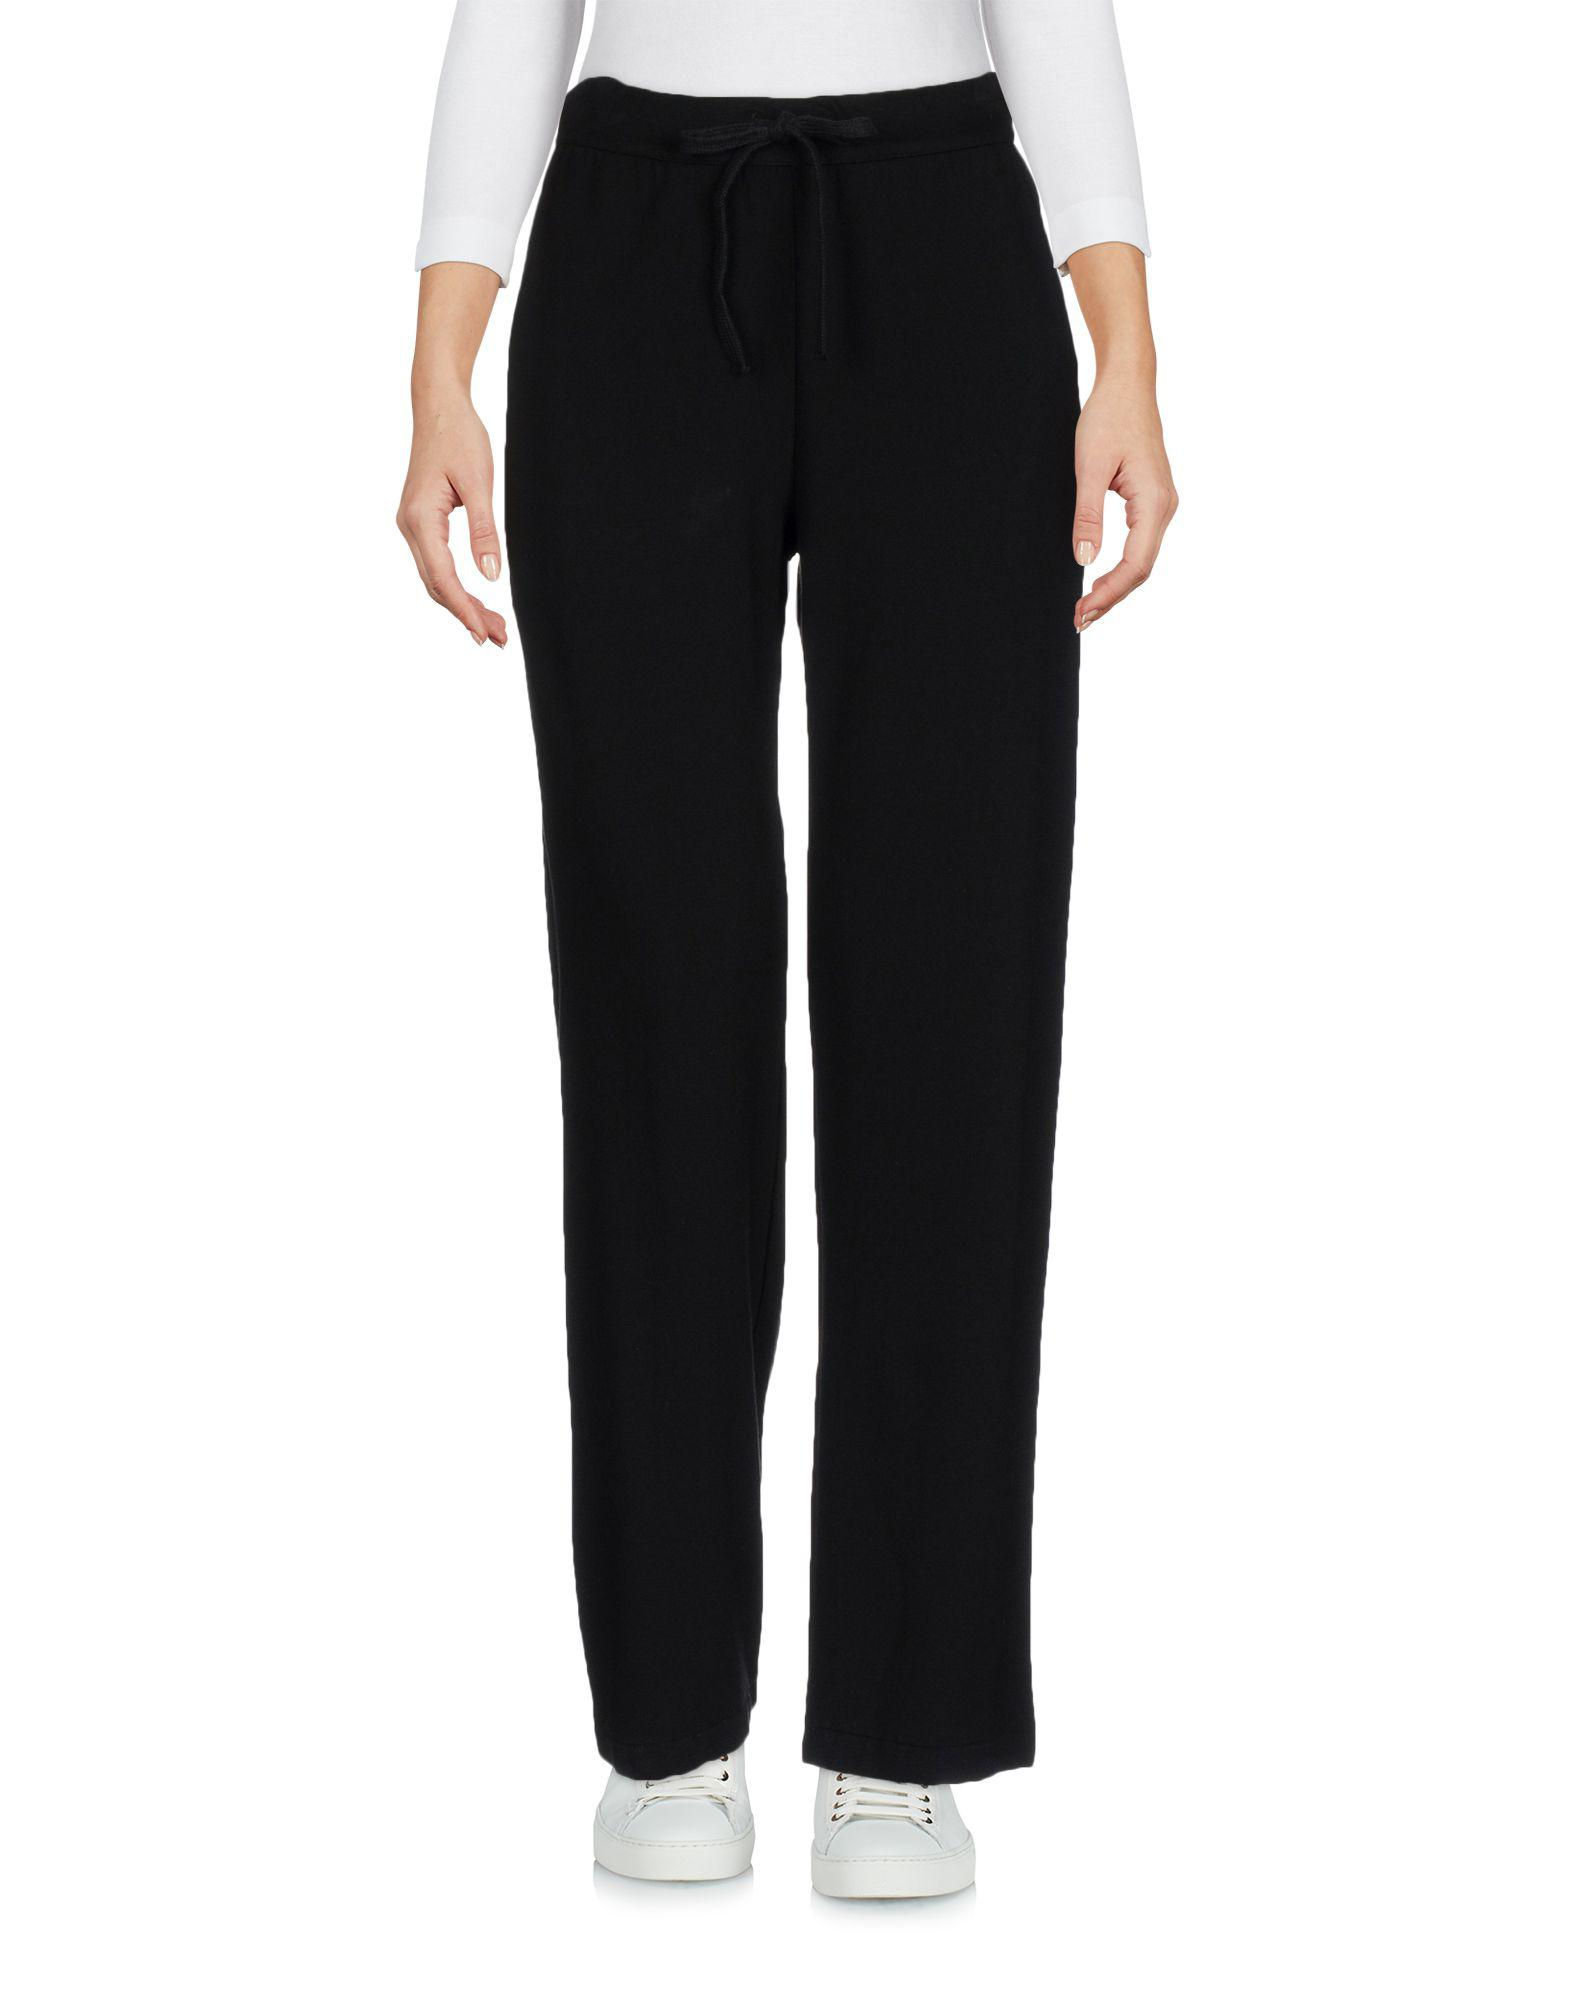 TROUSERS - 3/4-length trousers Majestic Filatures jkXFgCHvHQ